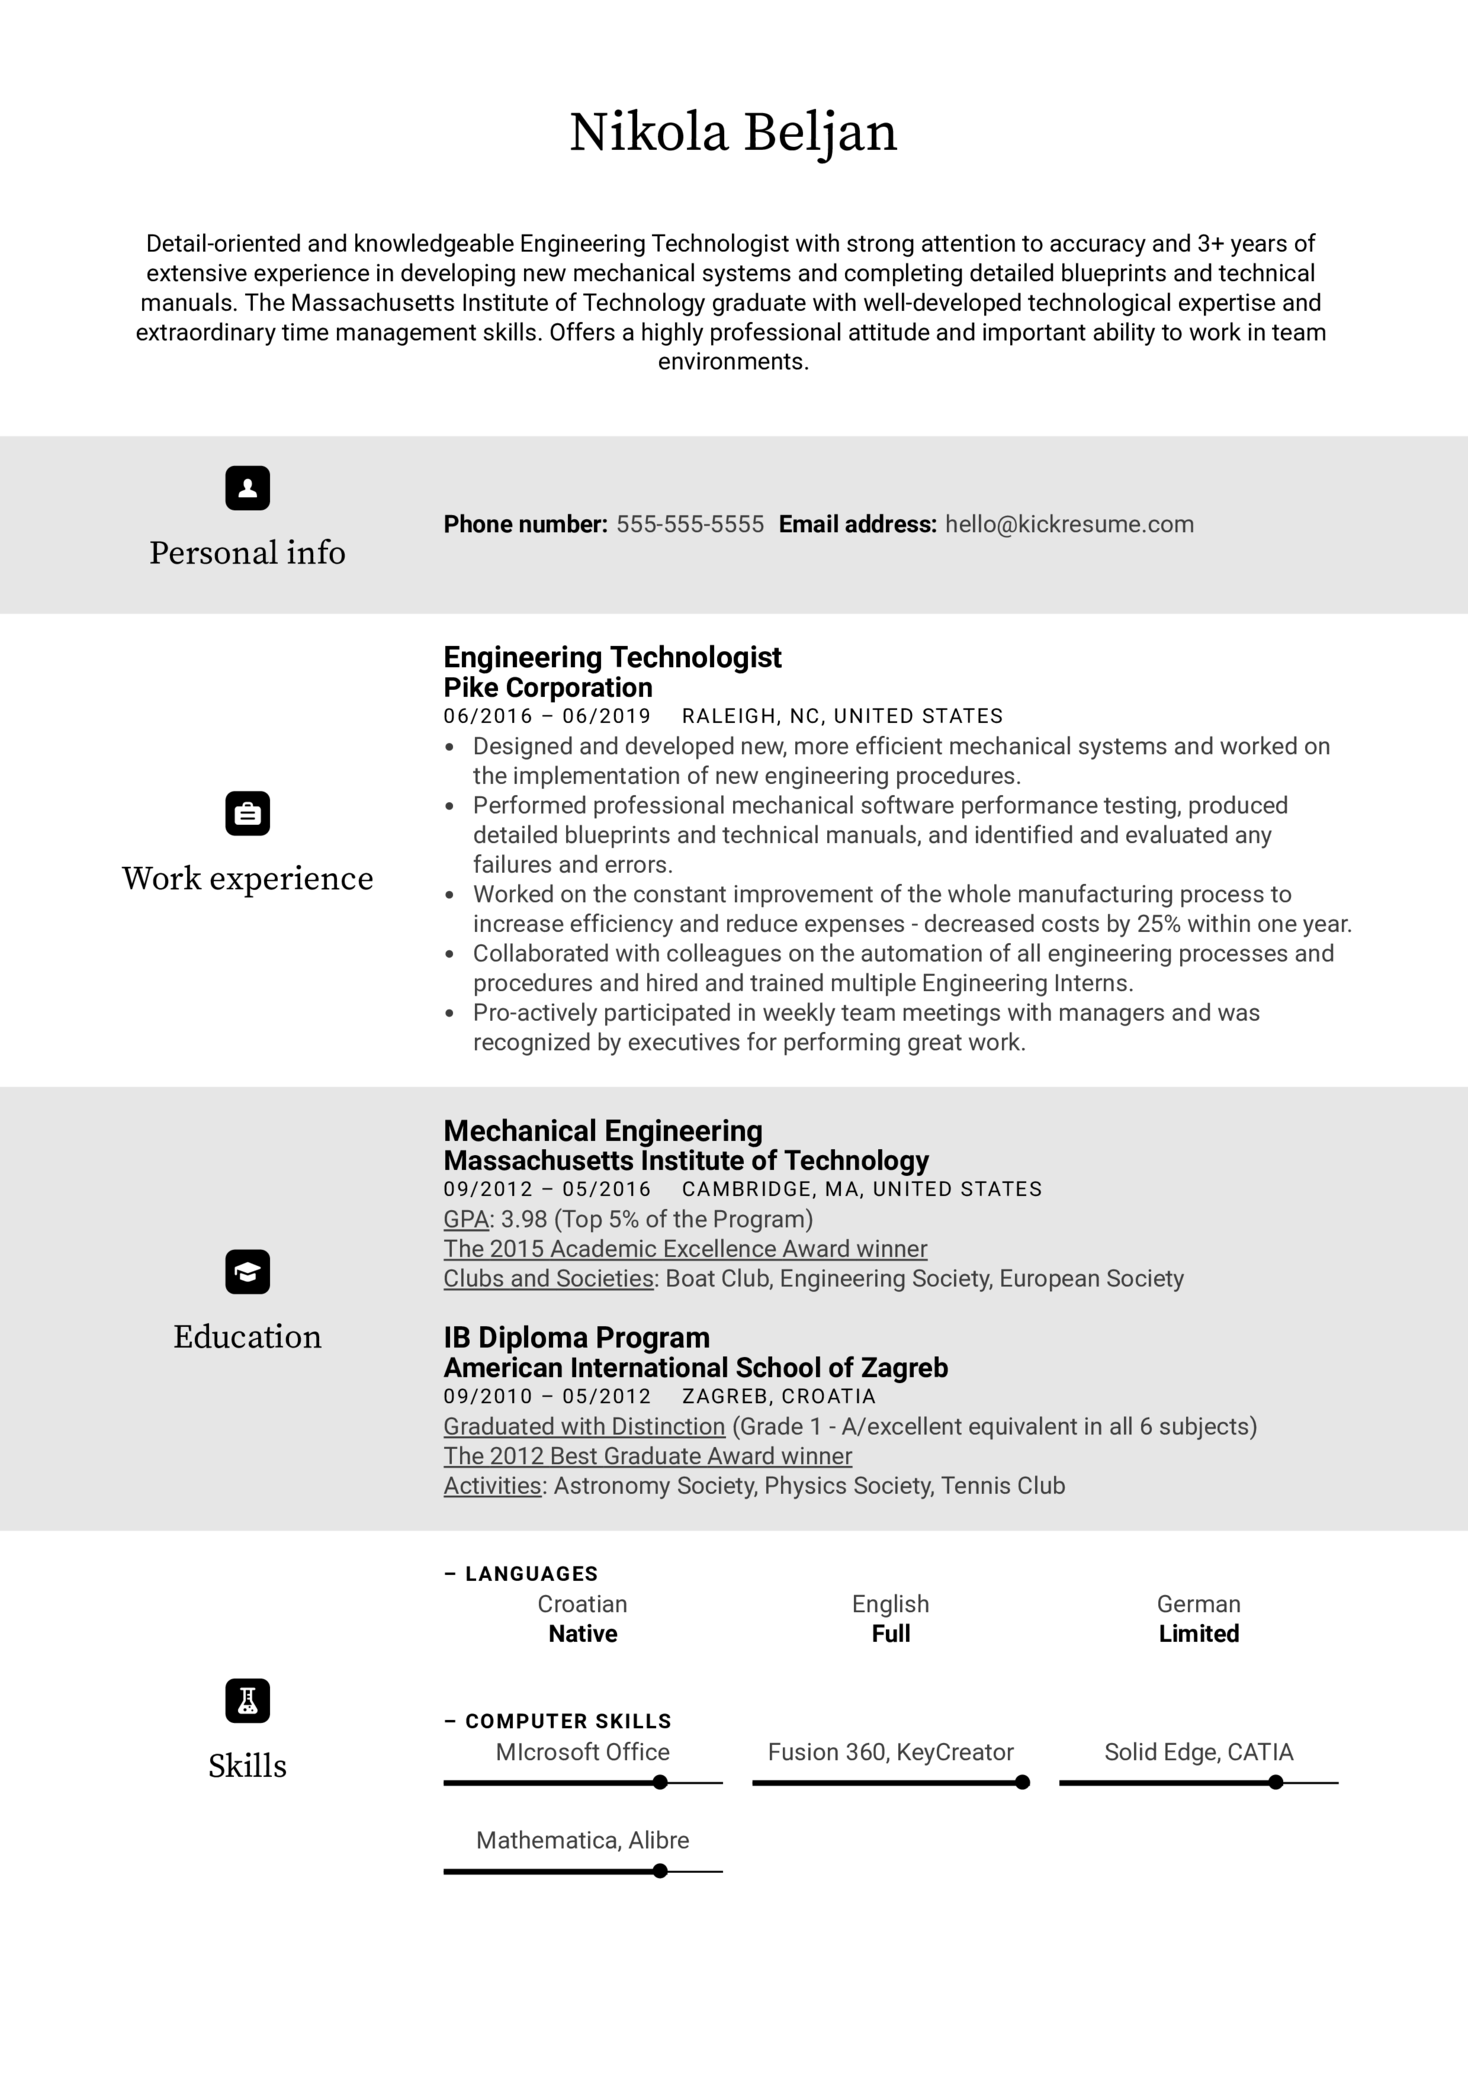 Engineering Technologist Resume Sample (parte 1)